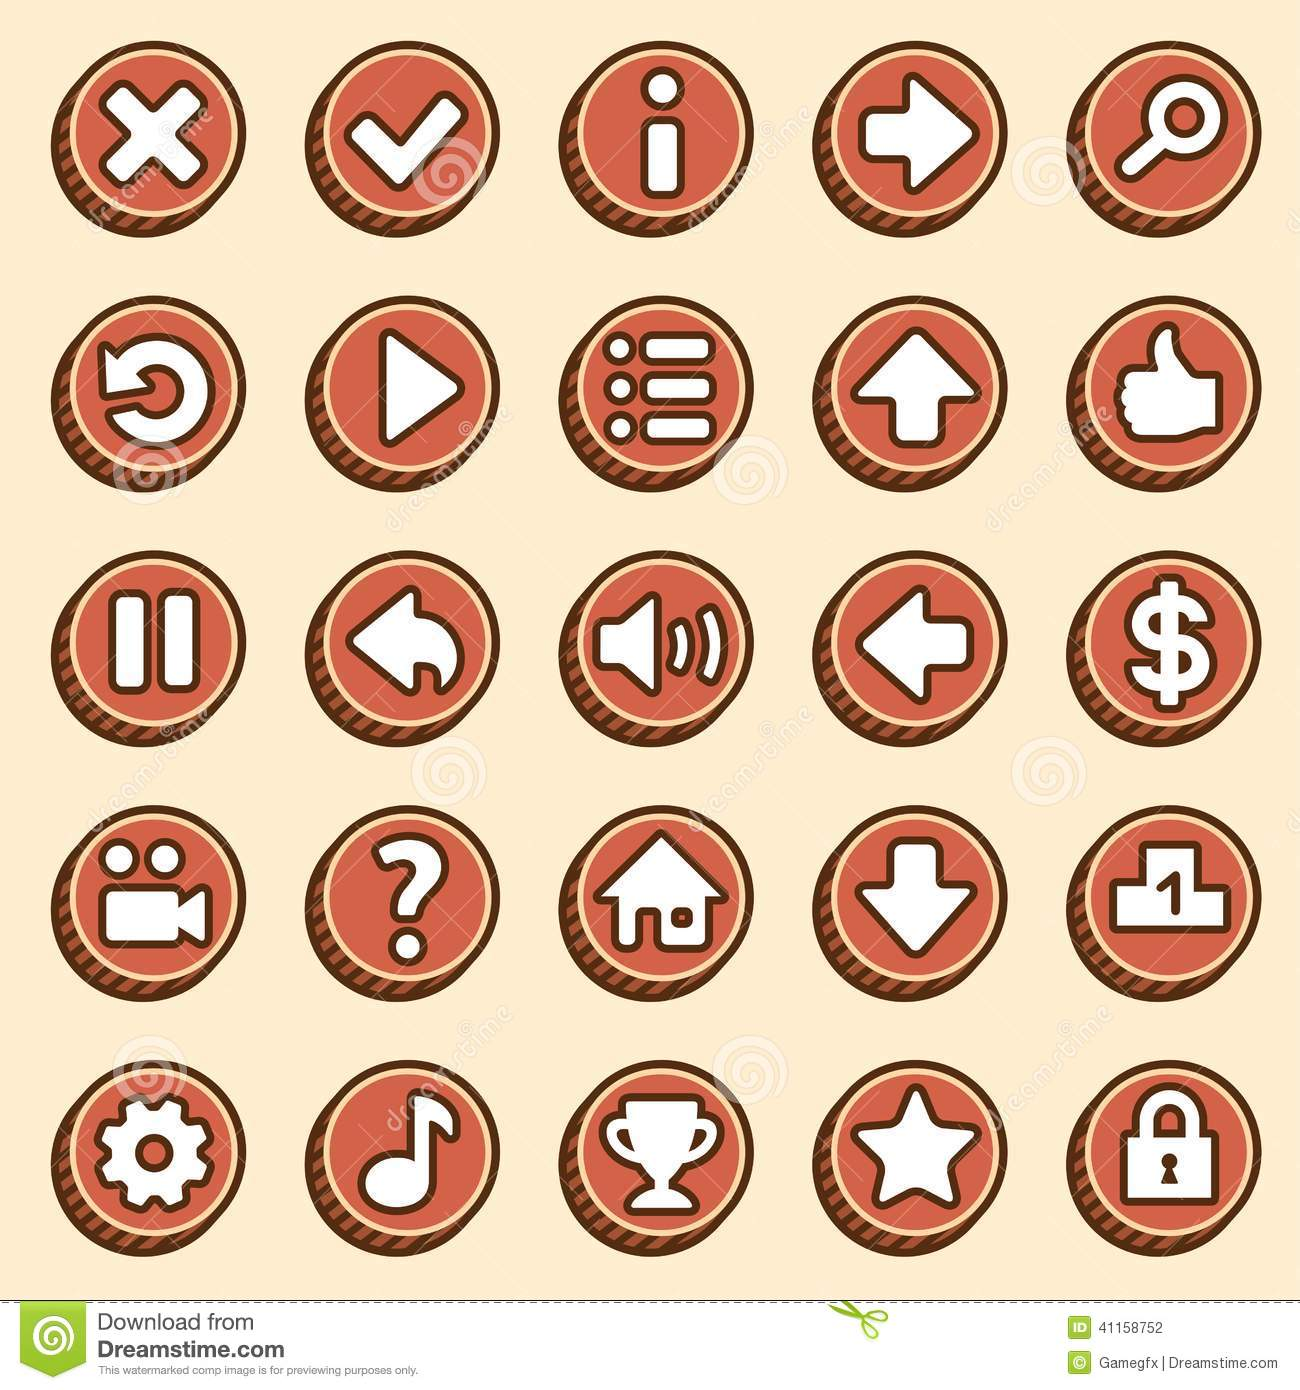 Flat And Simple Video Game Buttons Stock Vector - Image ...